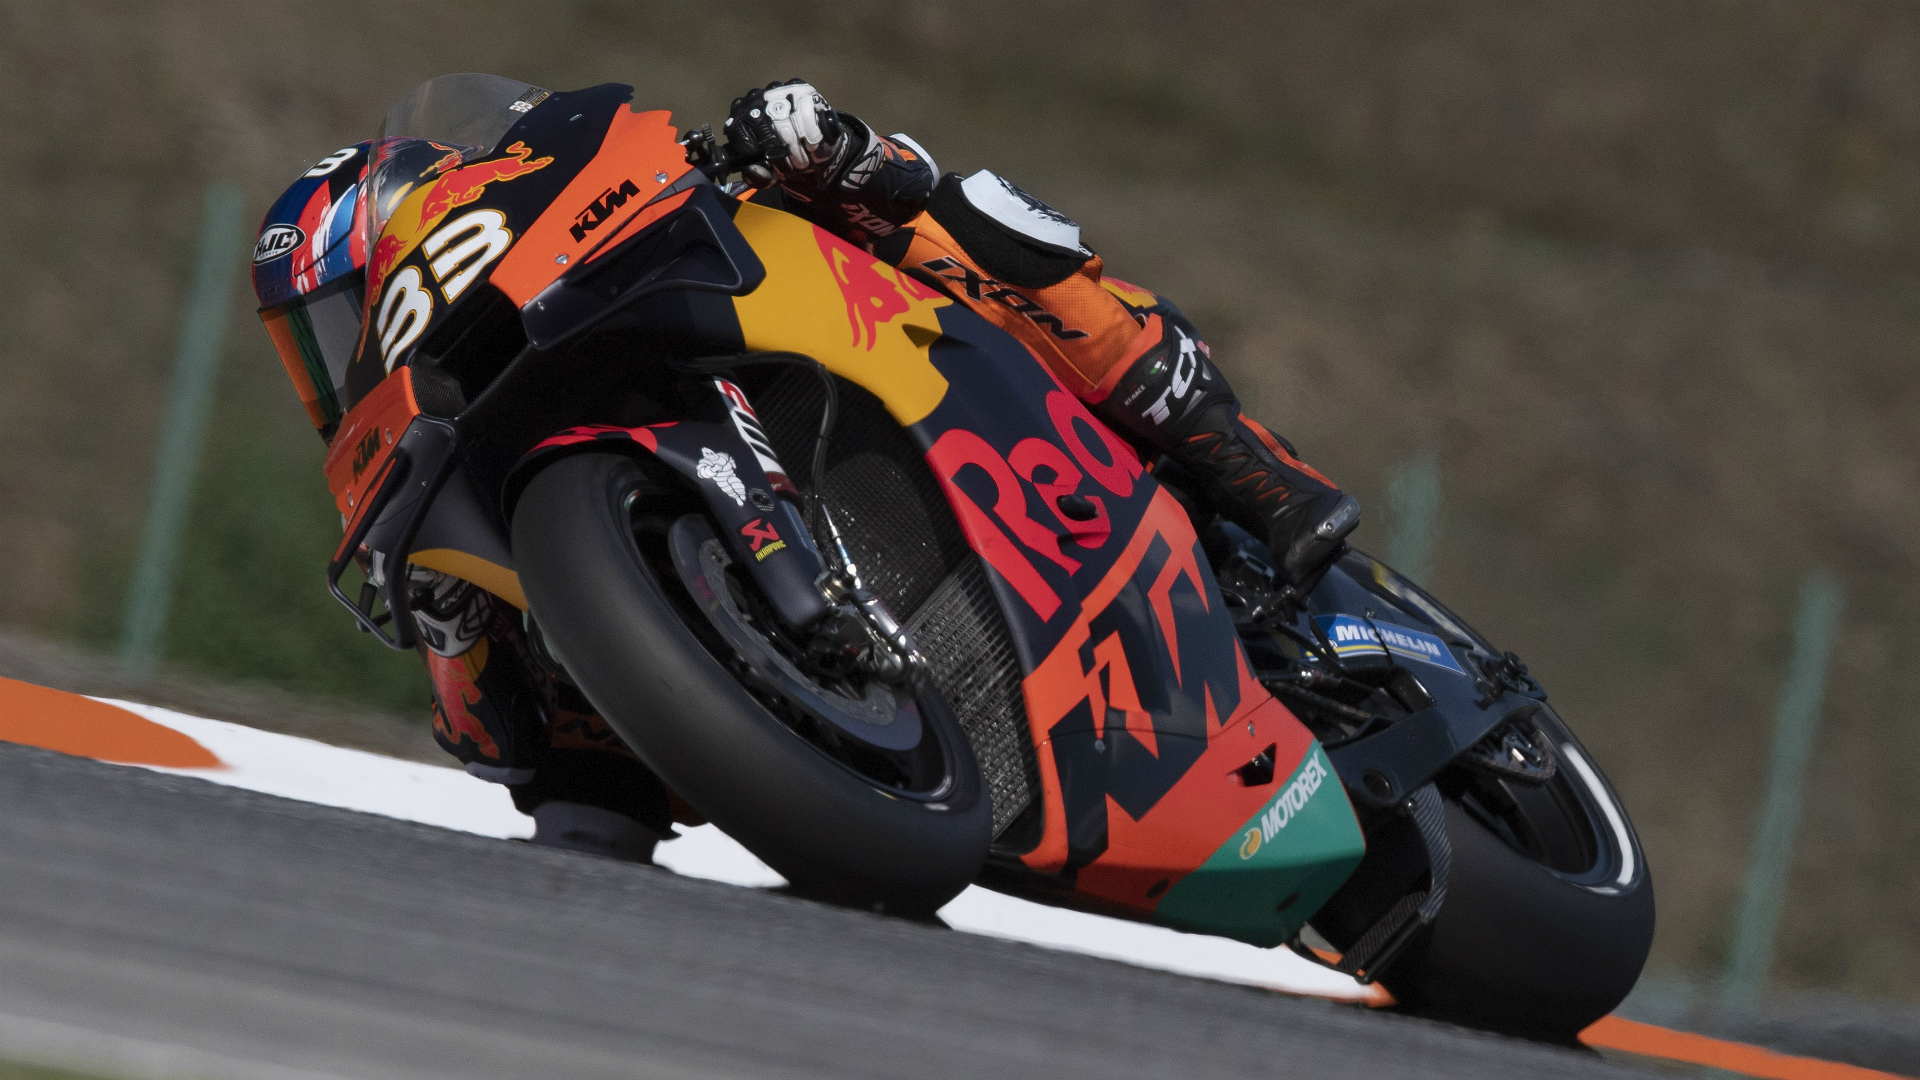 It was a day of firsts for KTM and Brad Binder, who had not yet quite comprehended his achievement at winning in MotoGP.